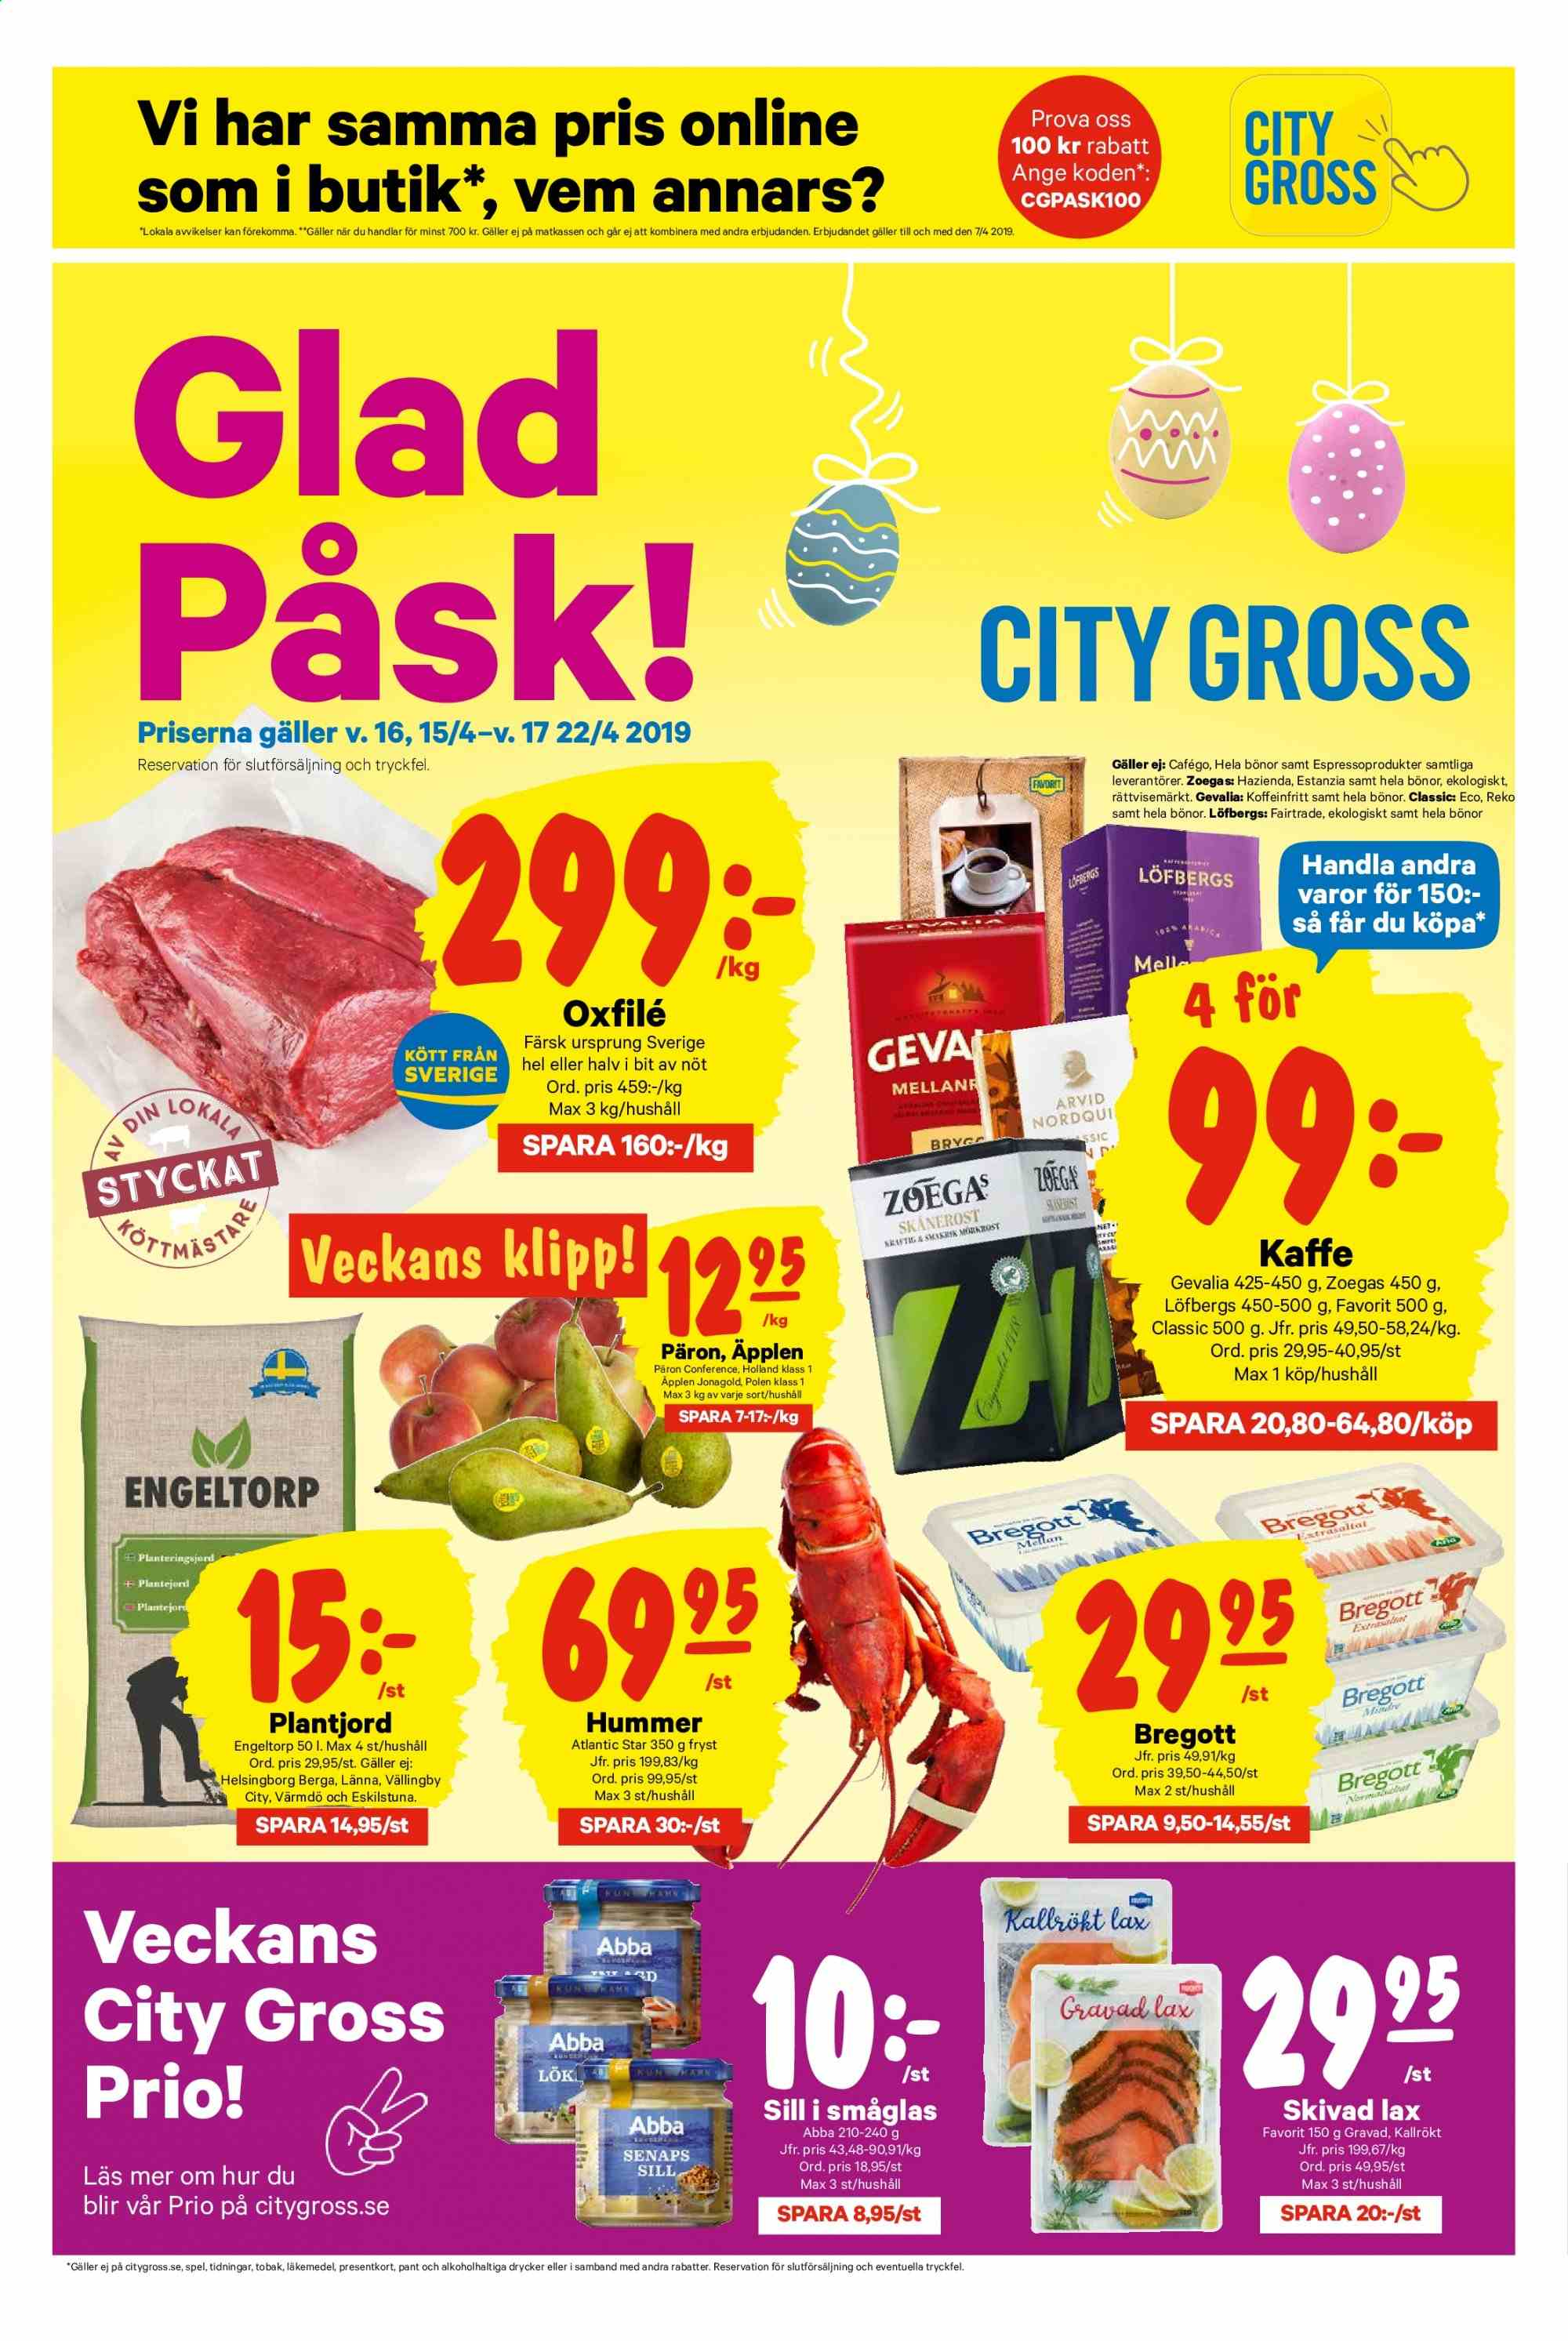 City Gross reklamblad - 15/4 2019 - 22/4 2019. Sida 1.